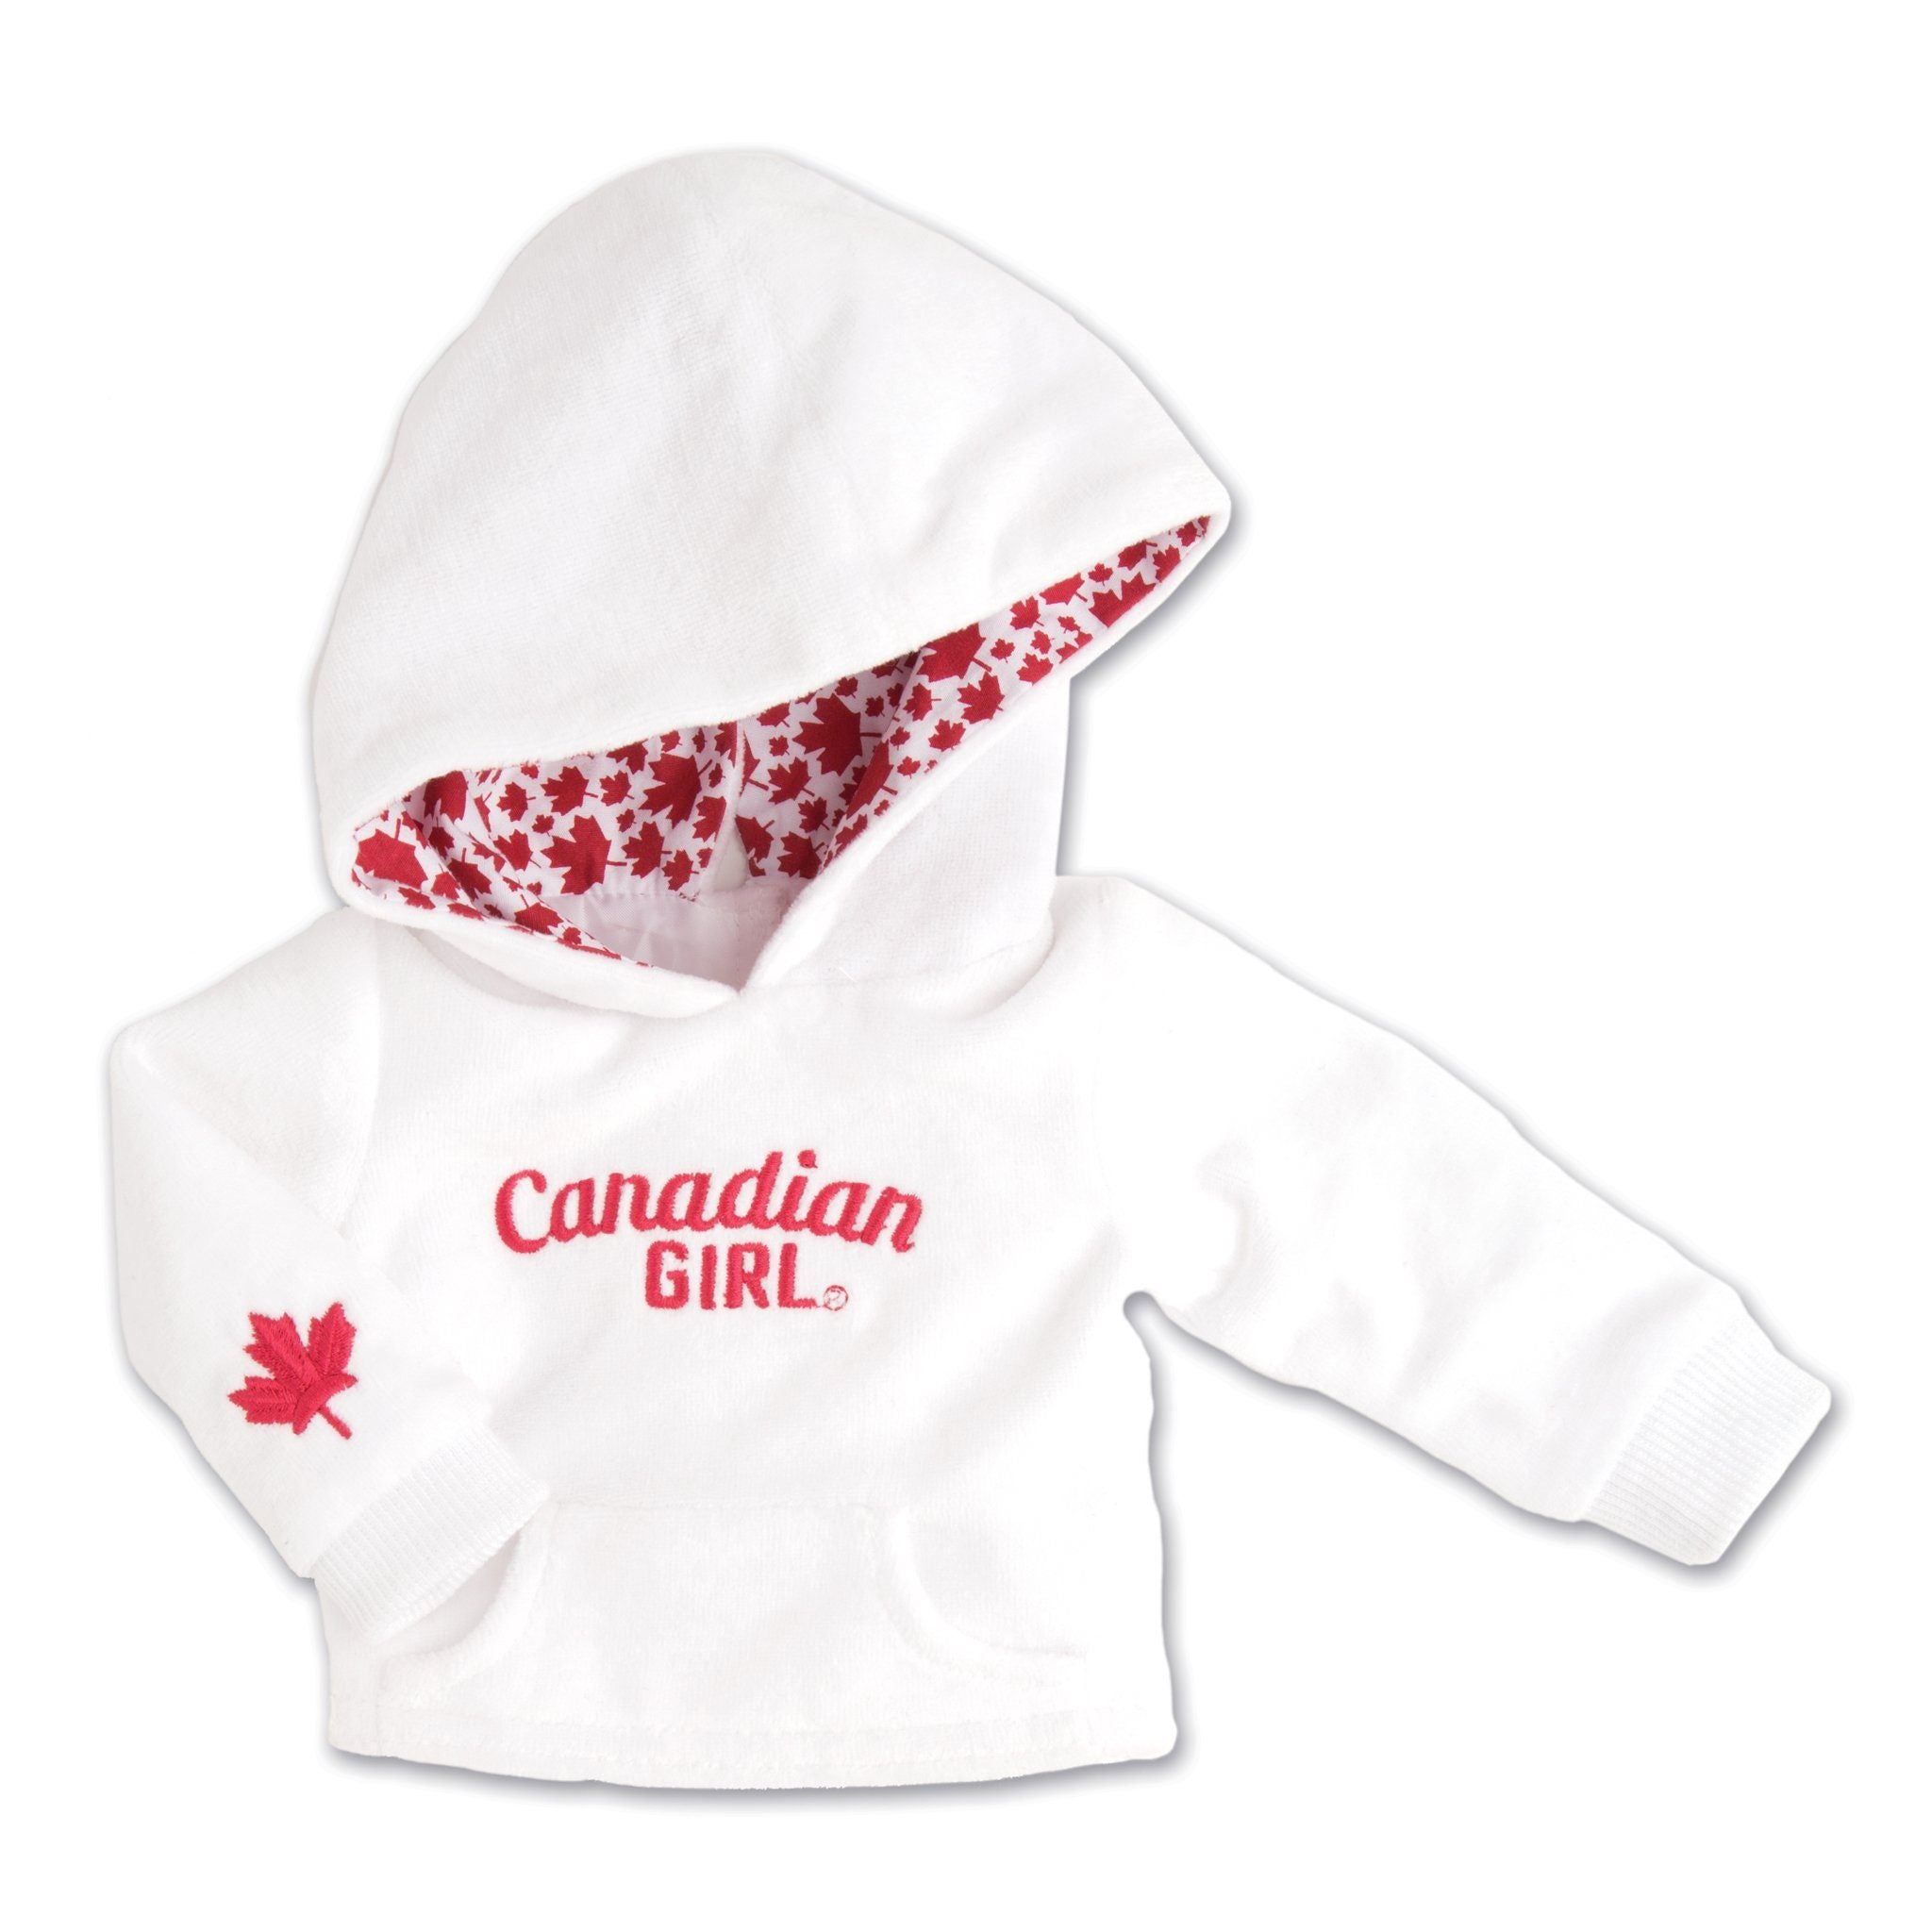 Strong and Free Canadian Girl white velour hoody fits all 18 inch dolls.